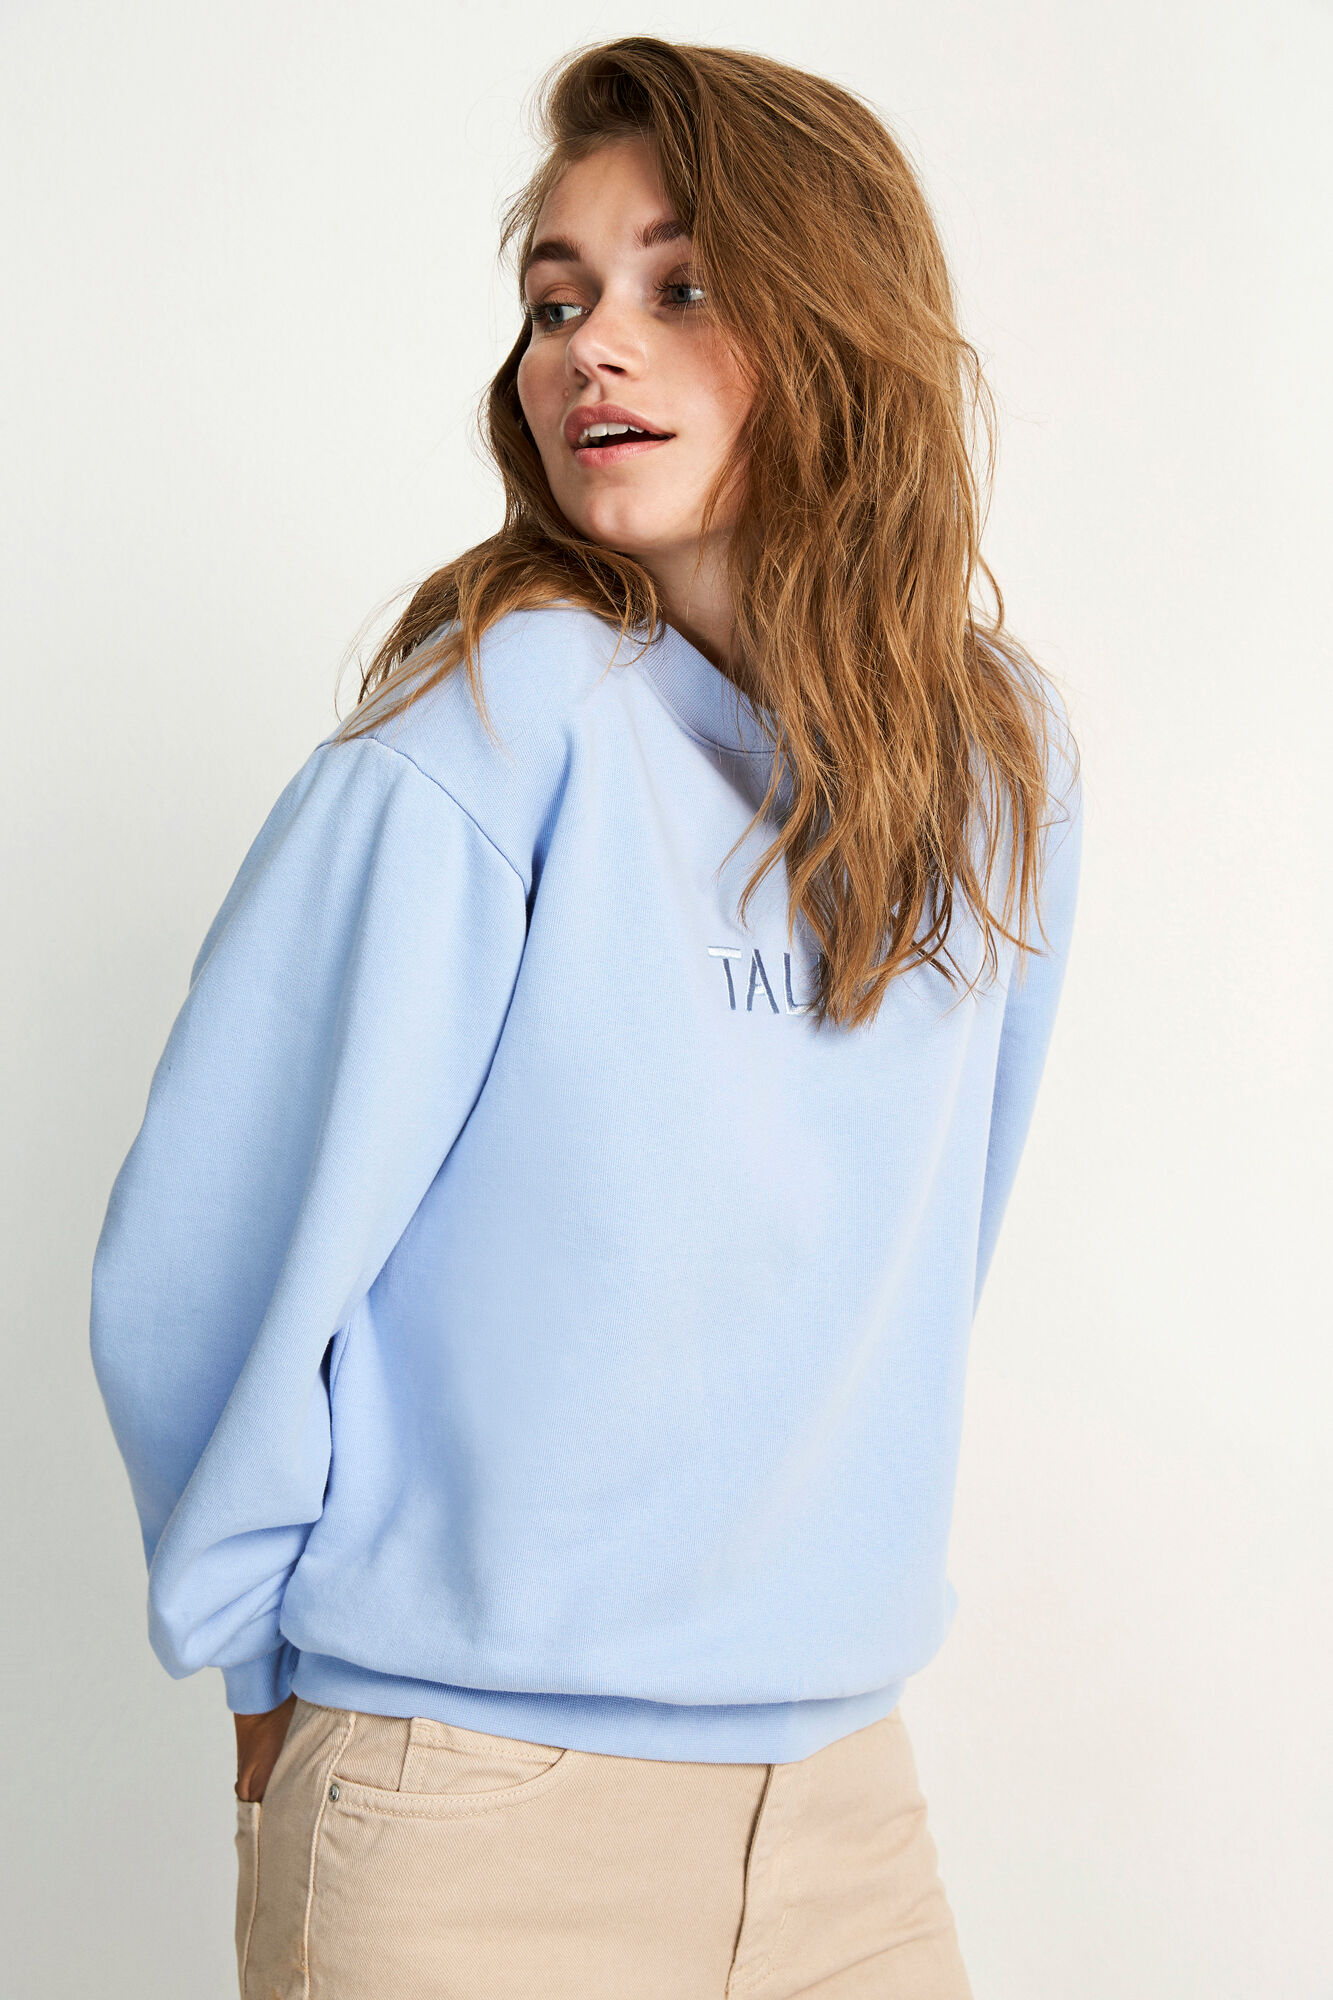 ENTALK LS SWEAT 5304